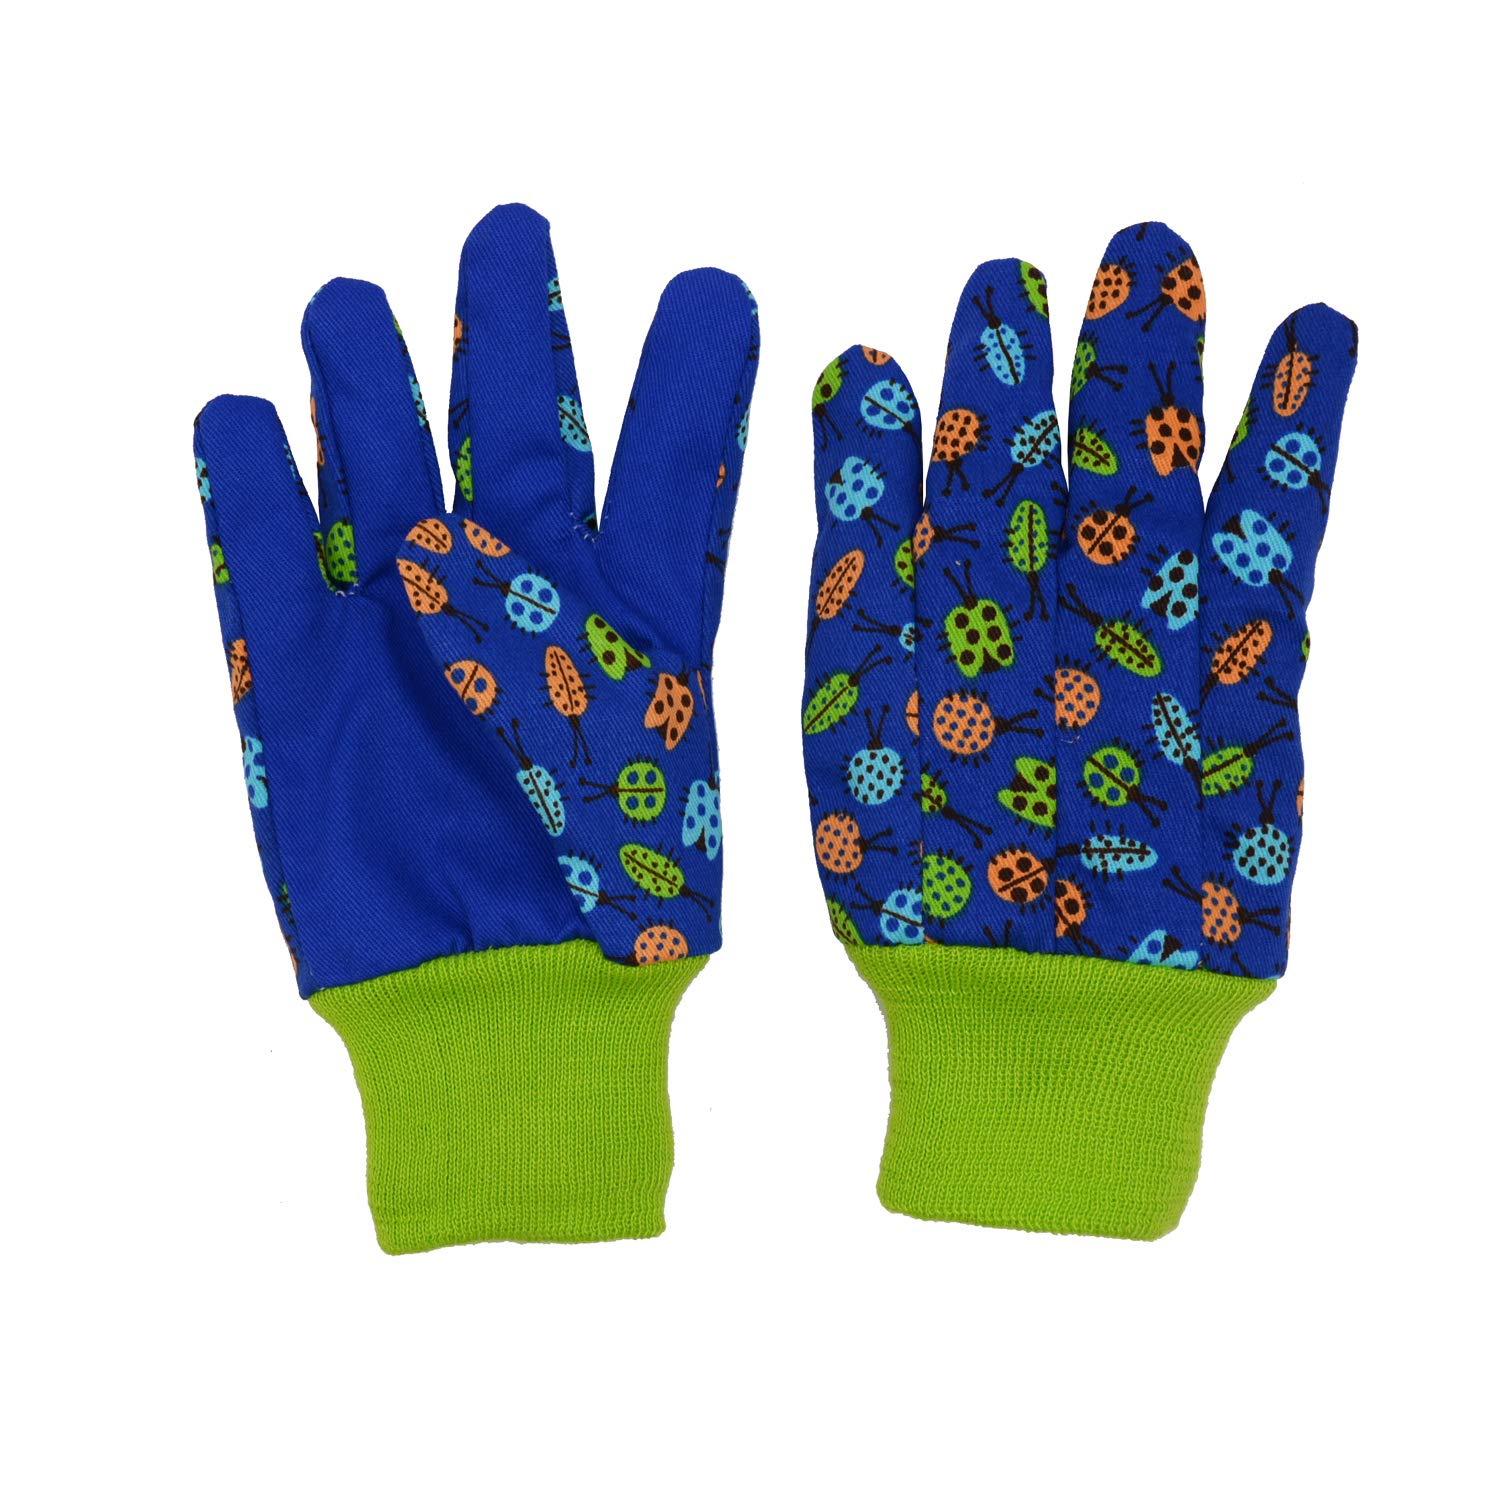 age 7-8 Dot /& Butterfly /& Ladybird Print 2 Pairs Cotton Garden Gloves for girls boys Green Medium ladybird+ dot age7-8 Kids Gardening gloves for age 5-6